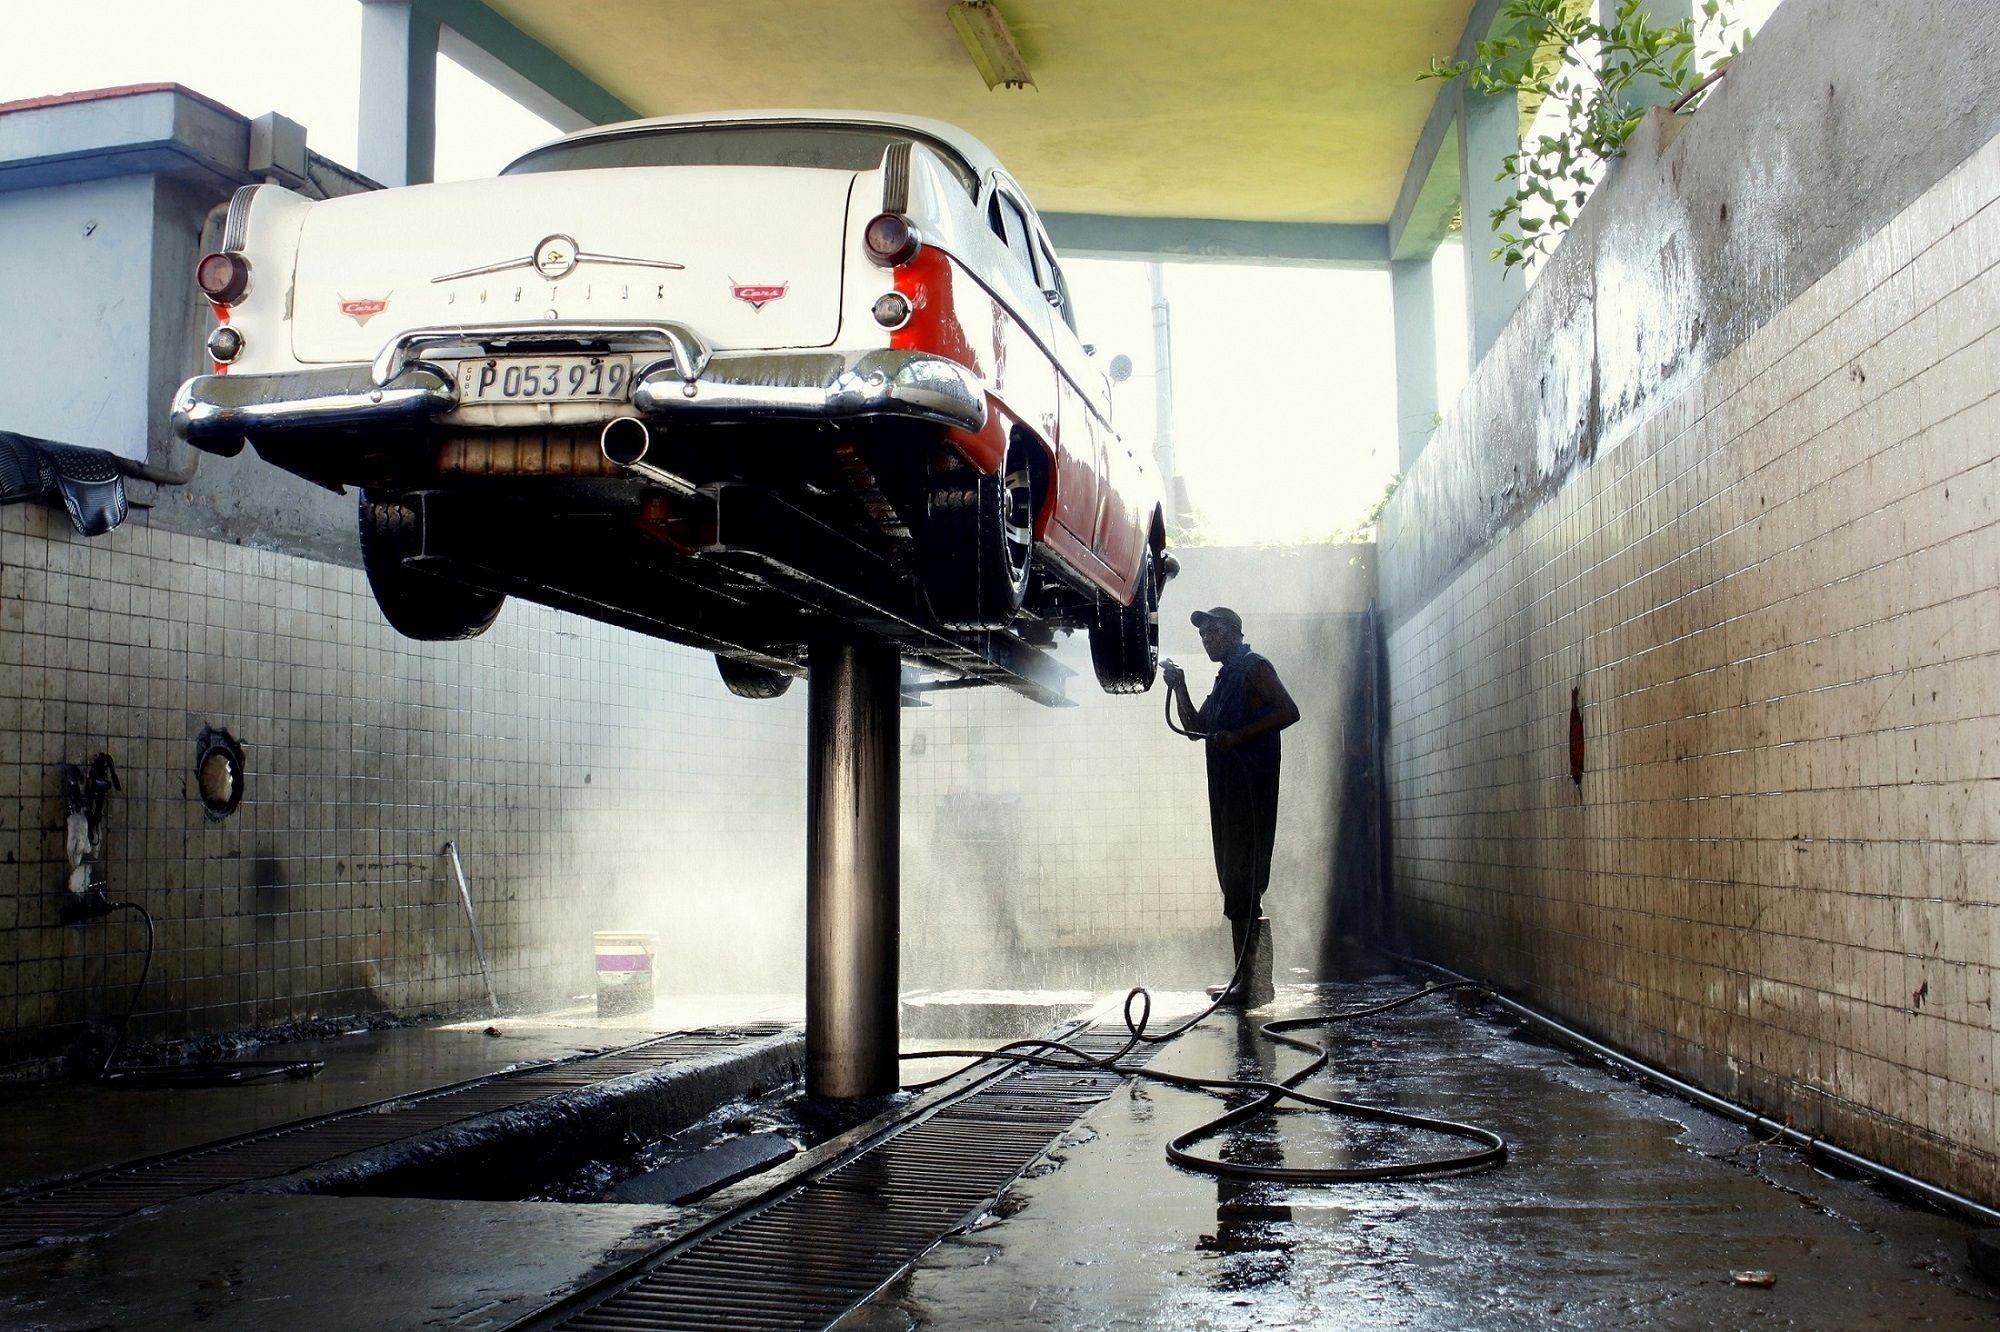 Working at the Car Wash